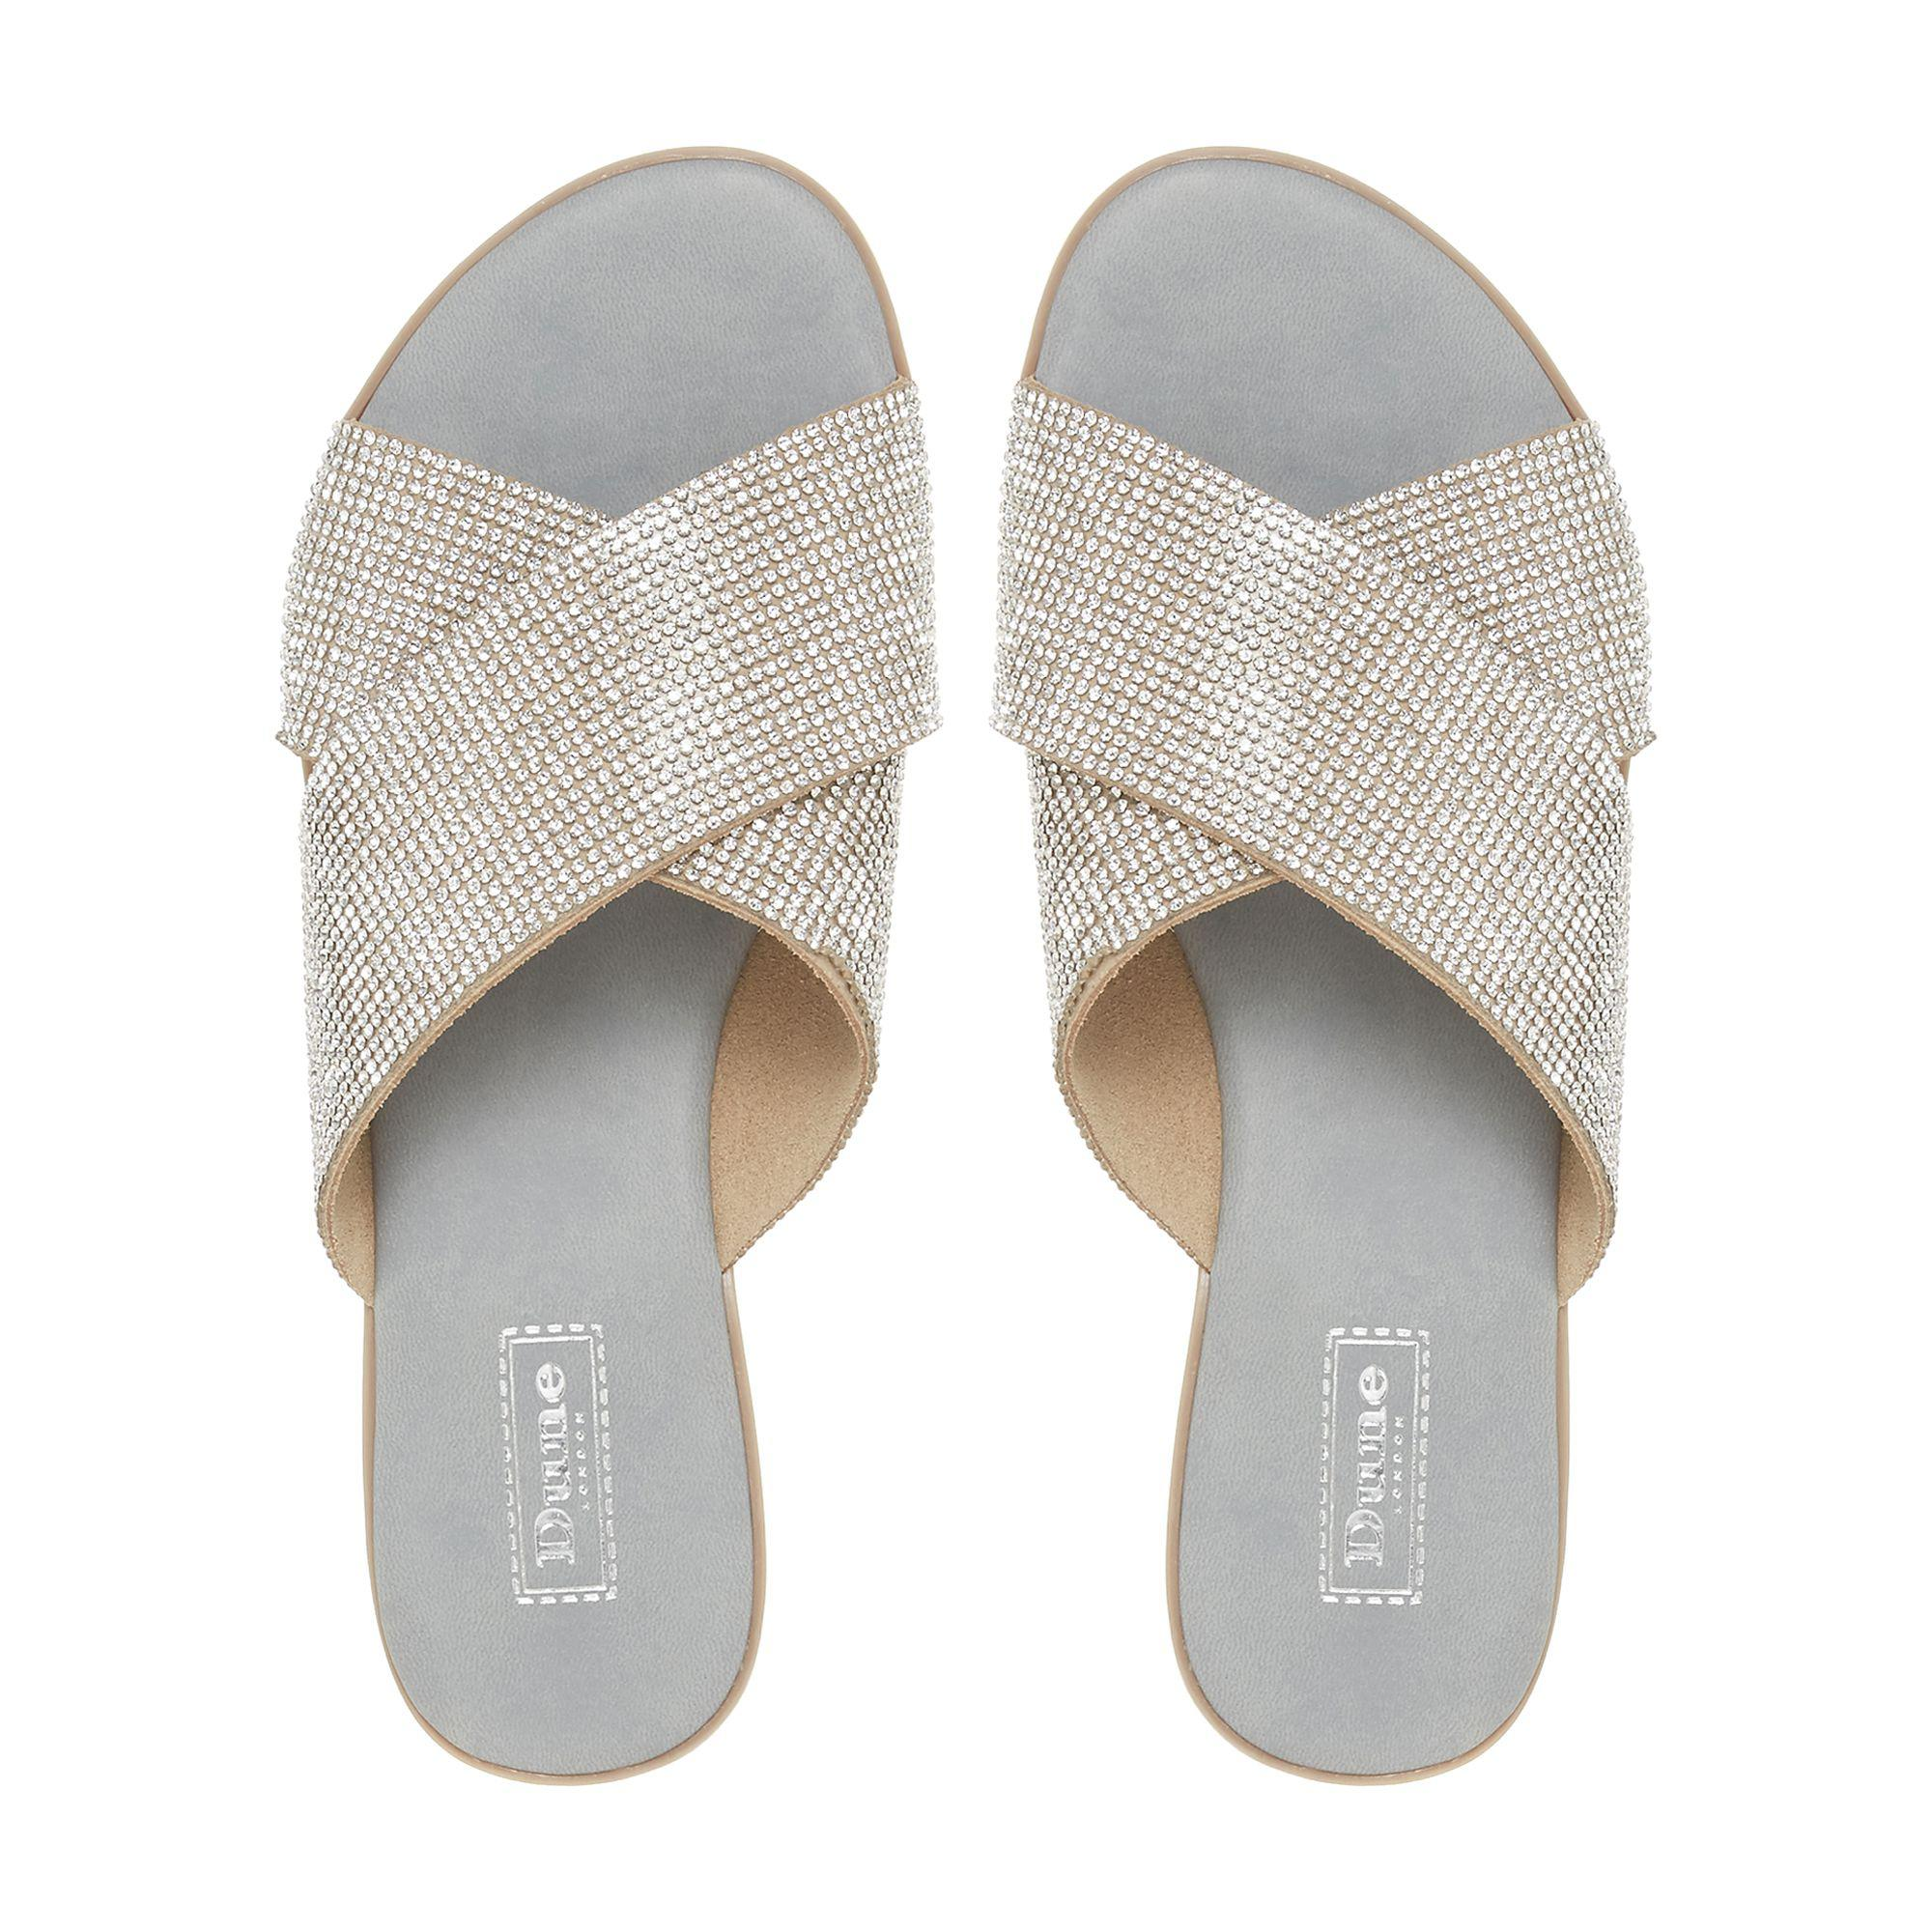 8cd9001f452eca Dune - Gray Grey Nevadaa Cross Strap Diamante Sandals - Lyst. View  fullscreen